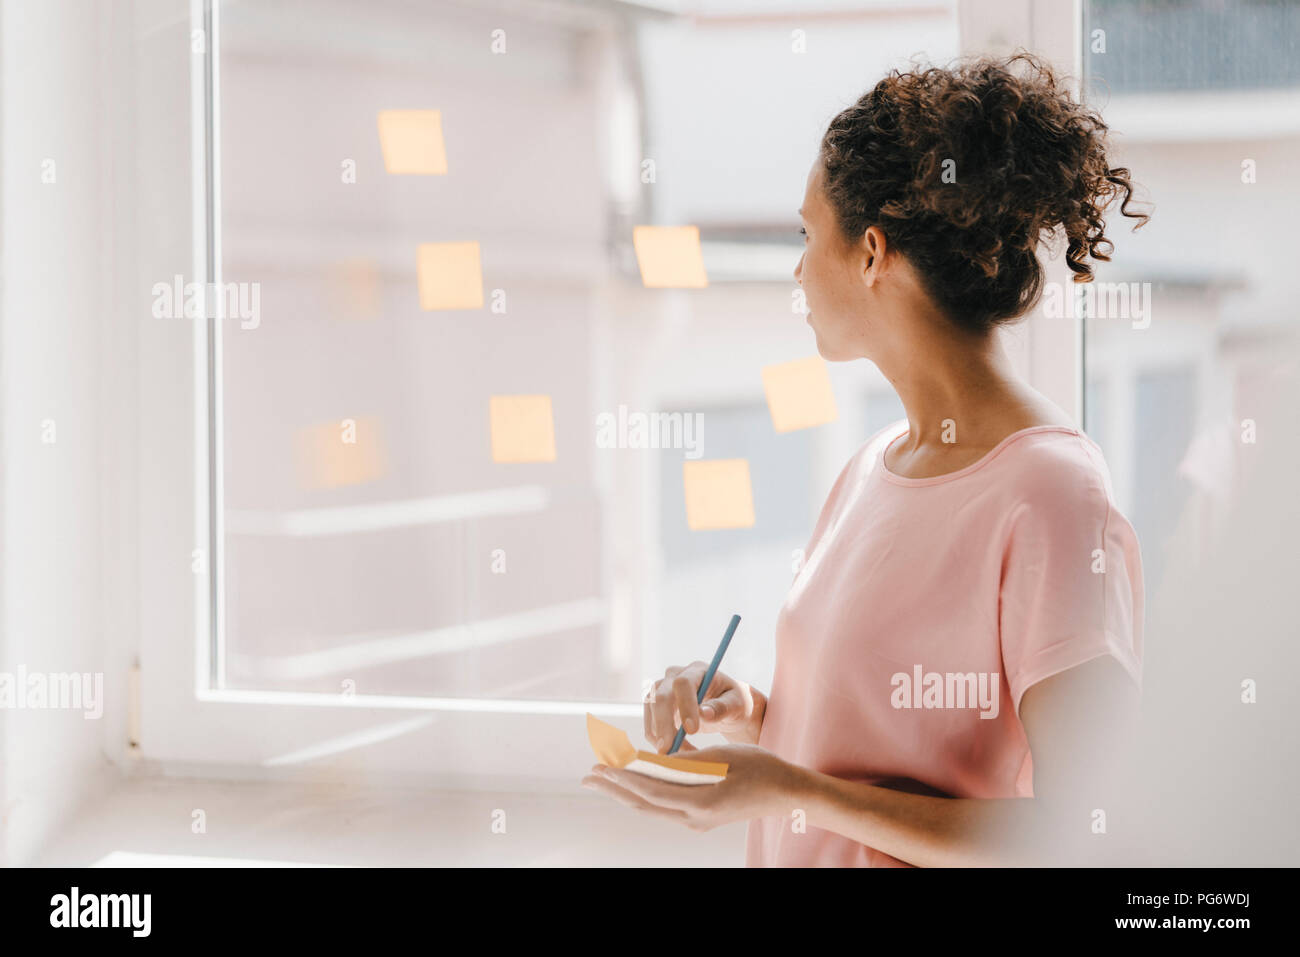 Woman posting adhesive notes on window, brainstorming - Stock Image